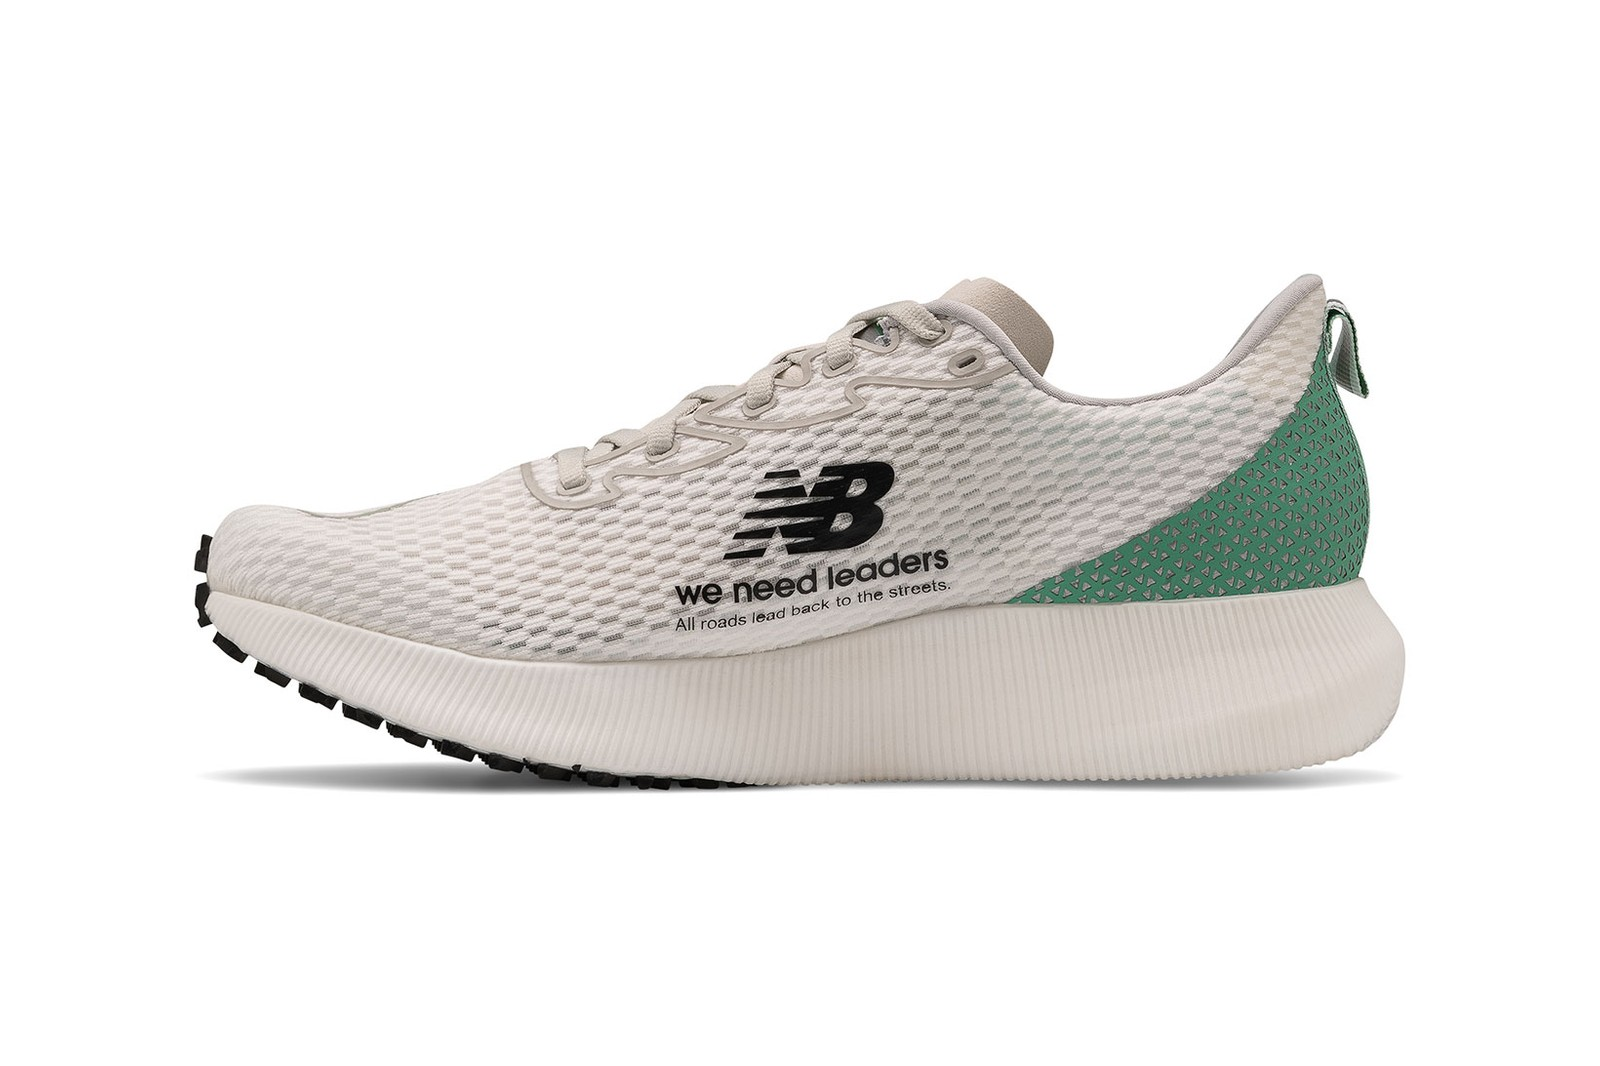 new balance public school dao-yi chow we need leaders collaboration nb 327 fuelcell rc elite running apparel release info